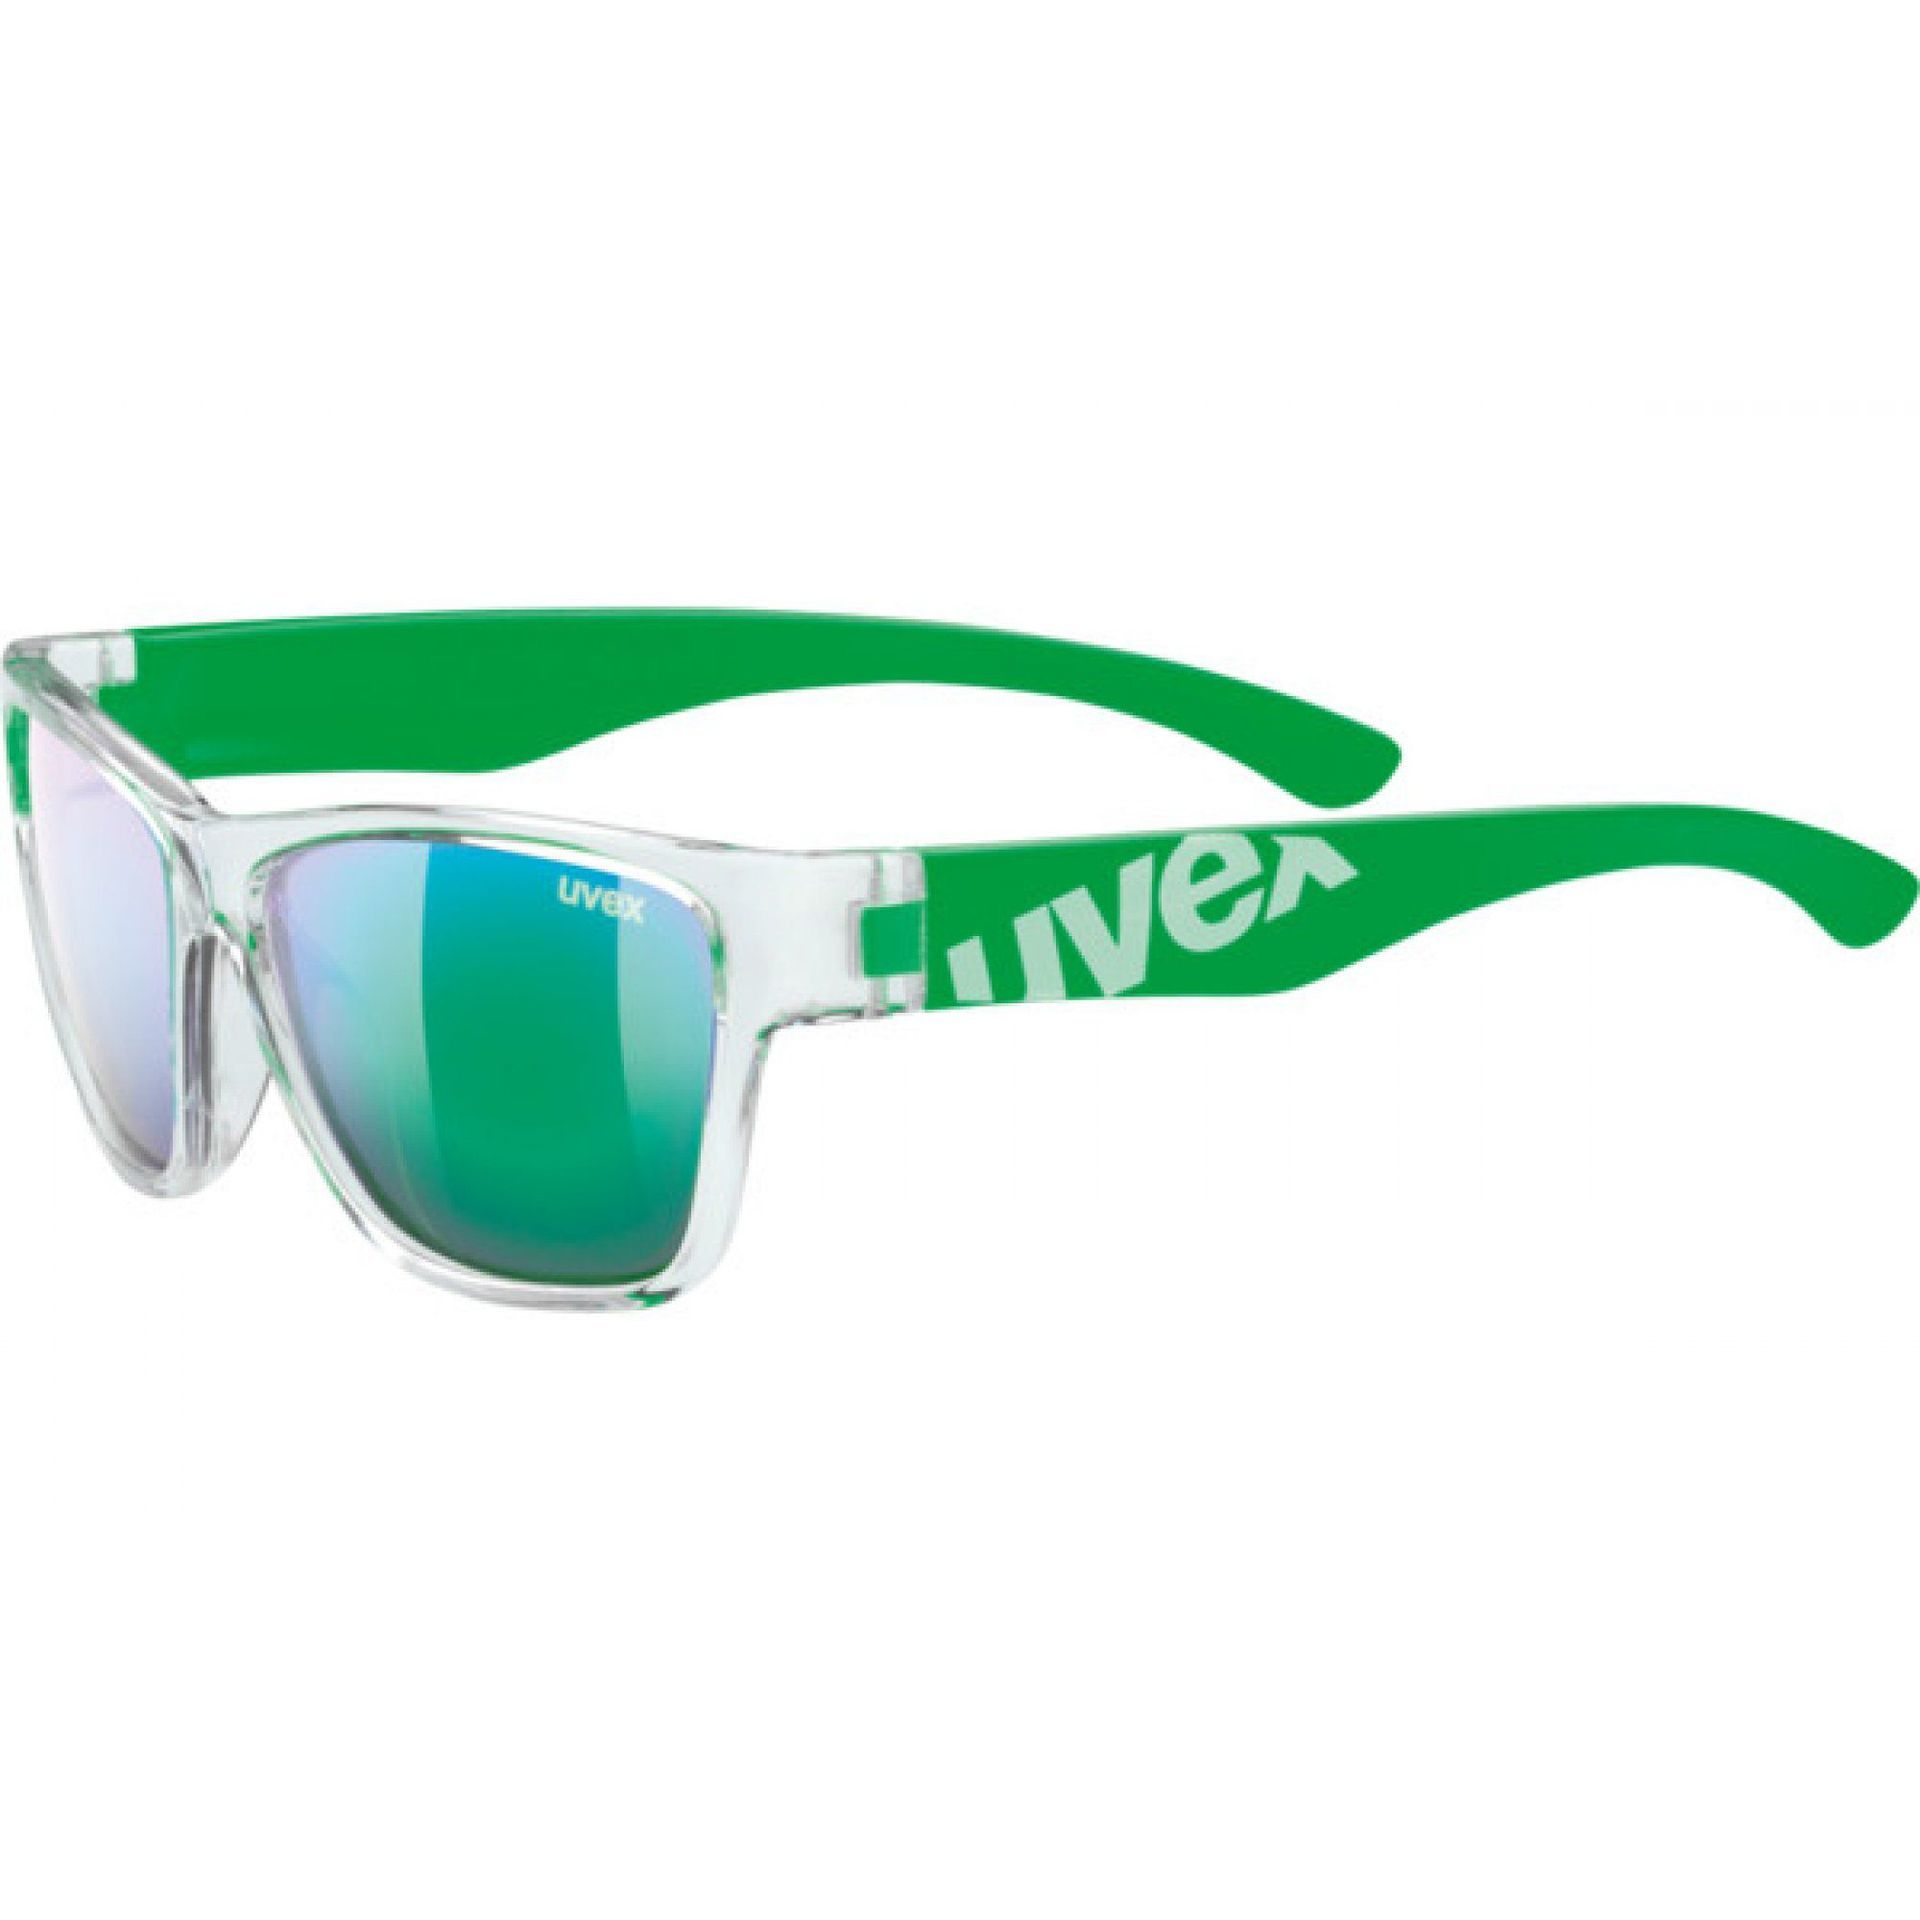 OKULARY UVEX SPORTSTYLE 508 895|9716 CLEAR GREEN